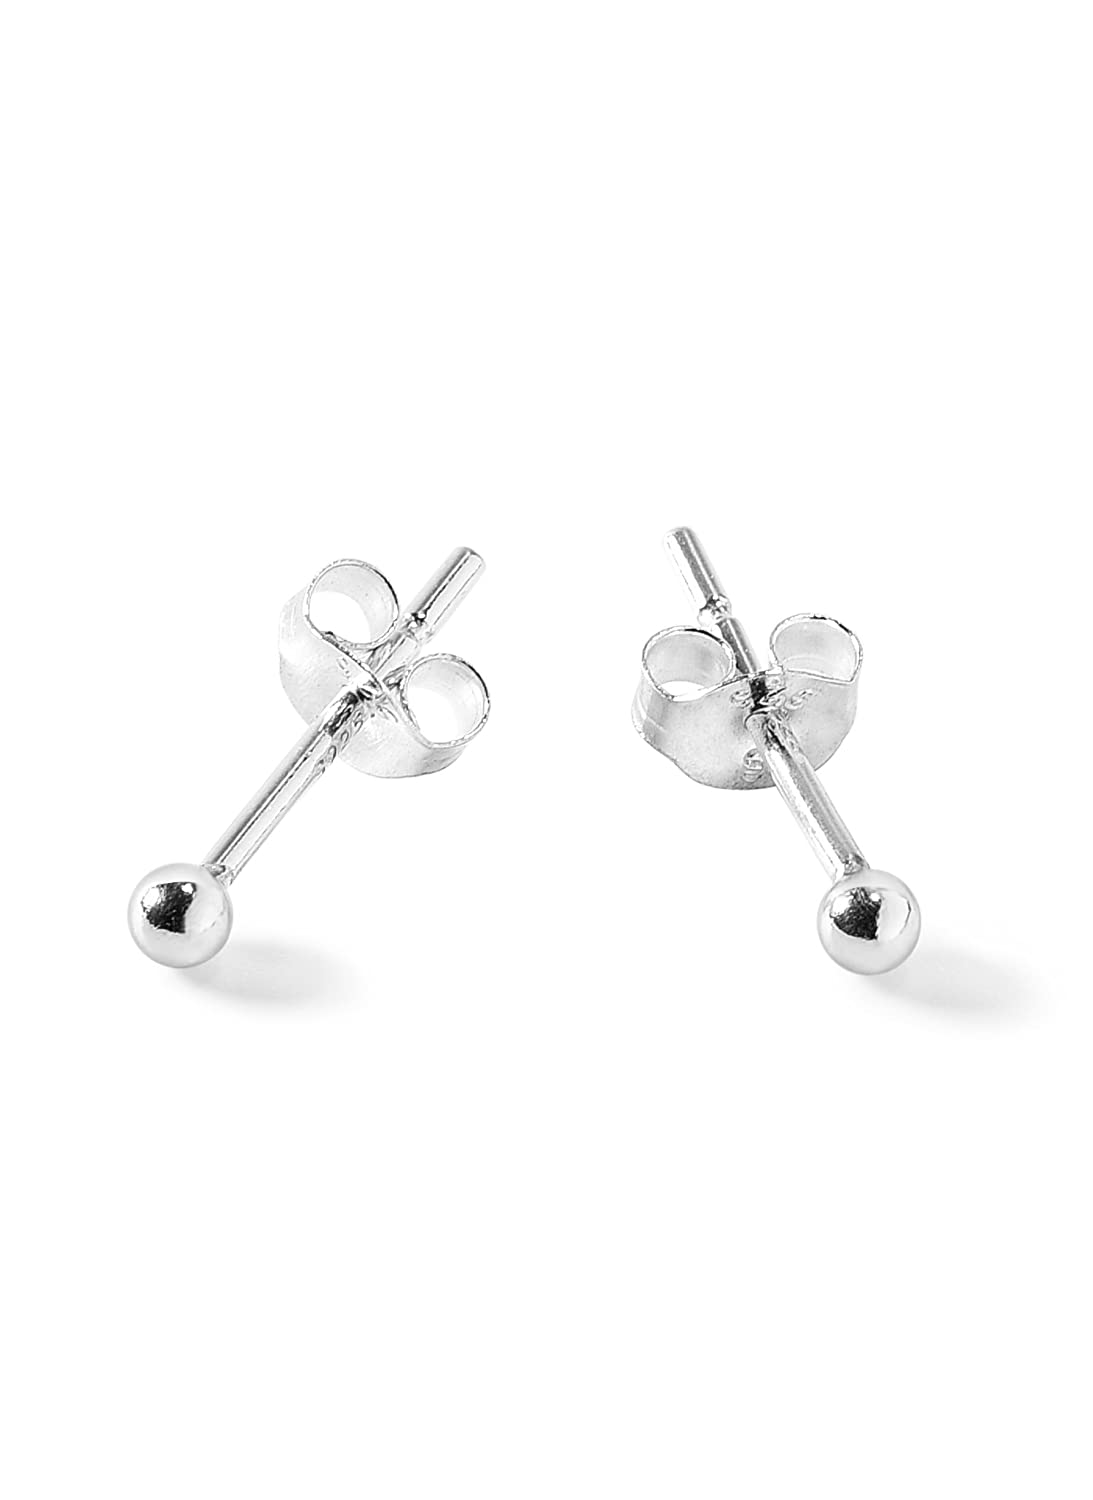 Sterling Silver Round Ball Stud Earrings with Matching Backings By Regetta Jewelry